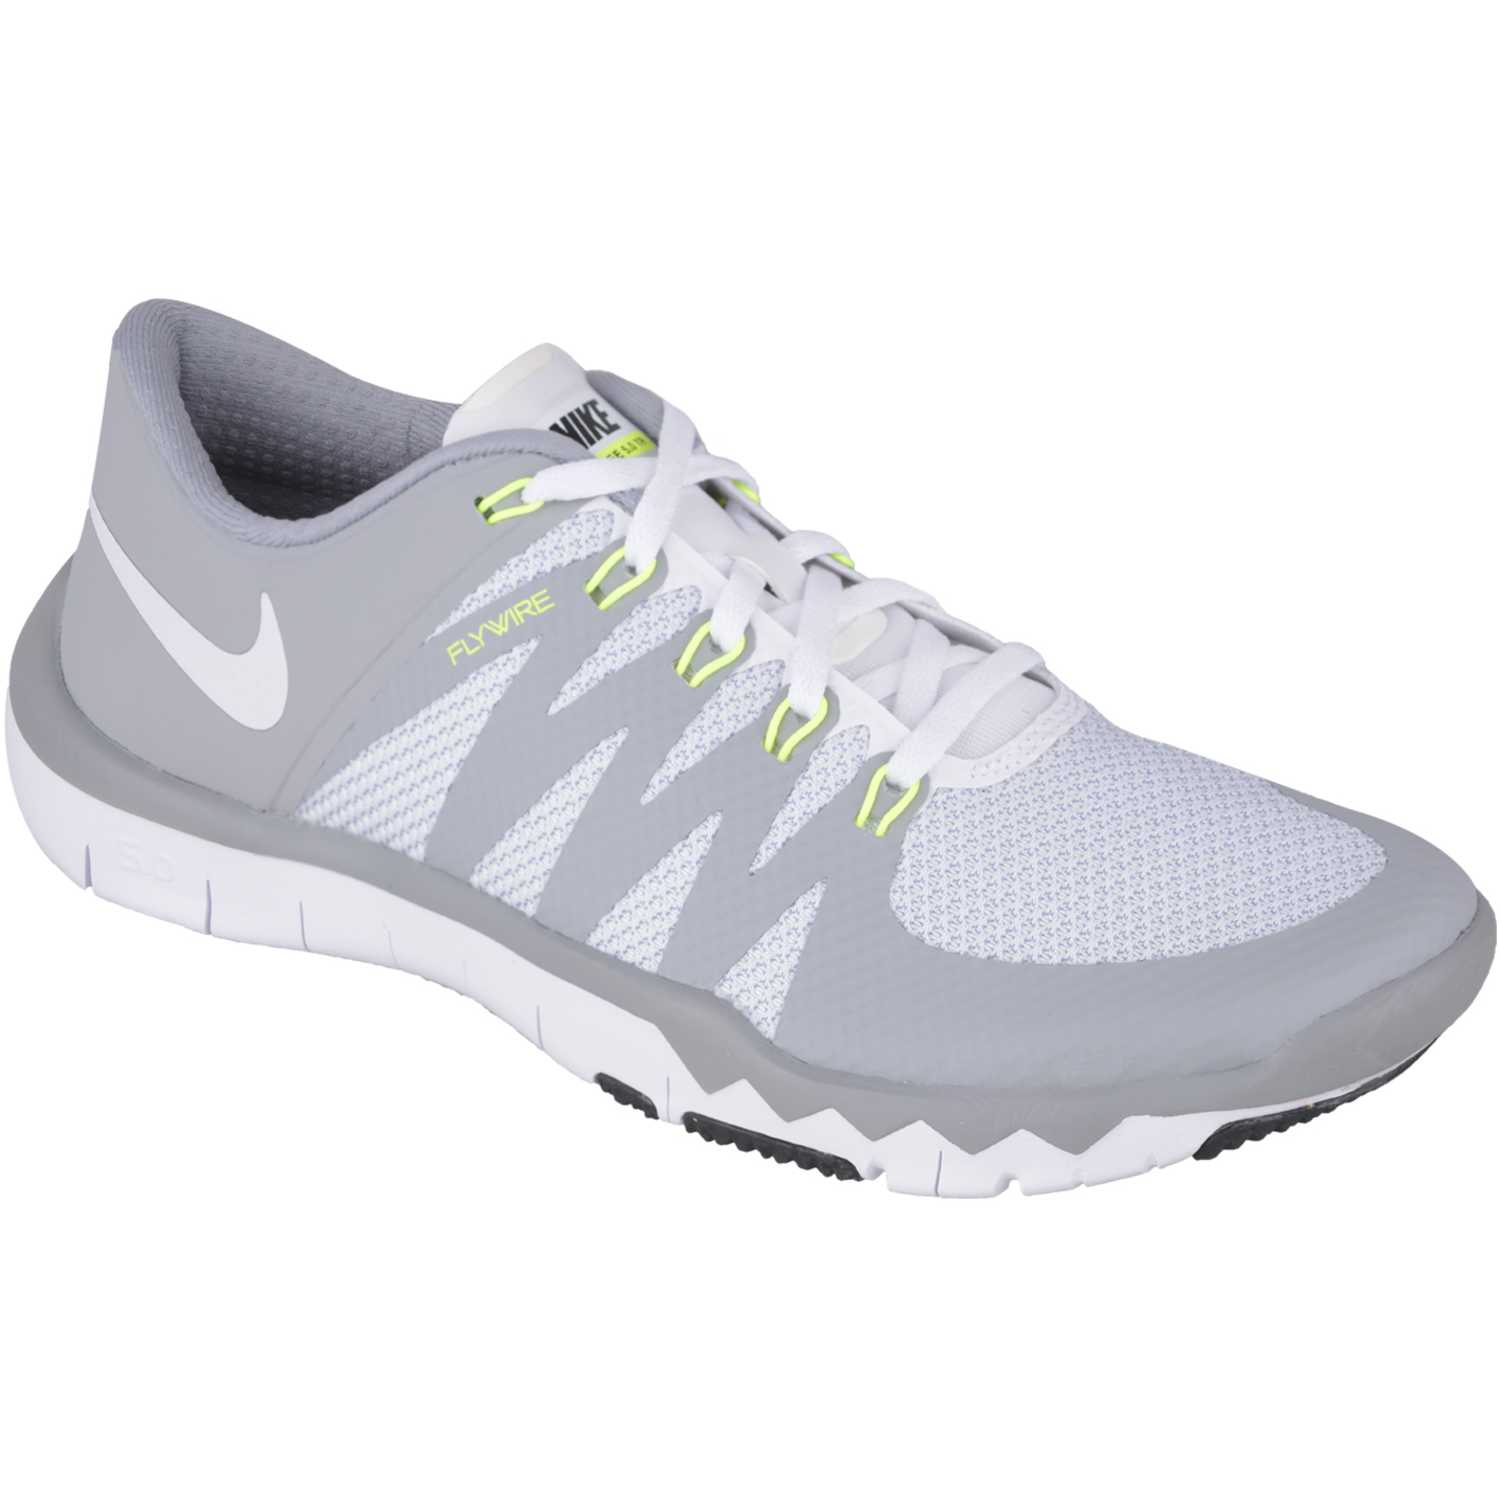 Lionel Green Street caligrafía Casi  uk nike free trainer 5.0 gray and blanco ab4b9 41c0b